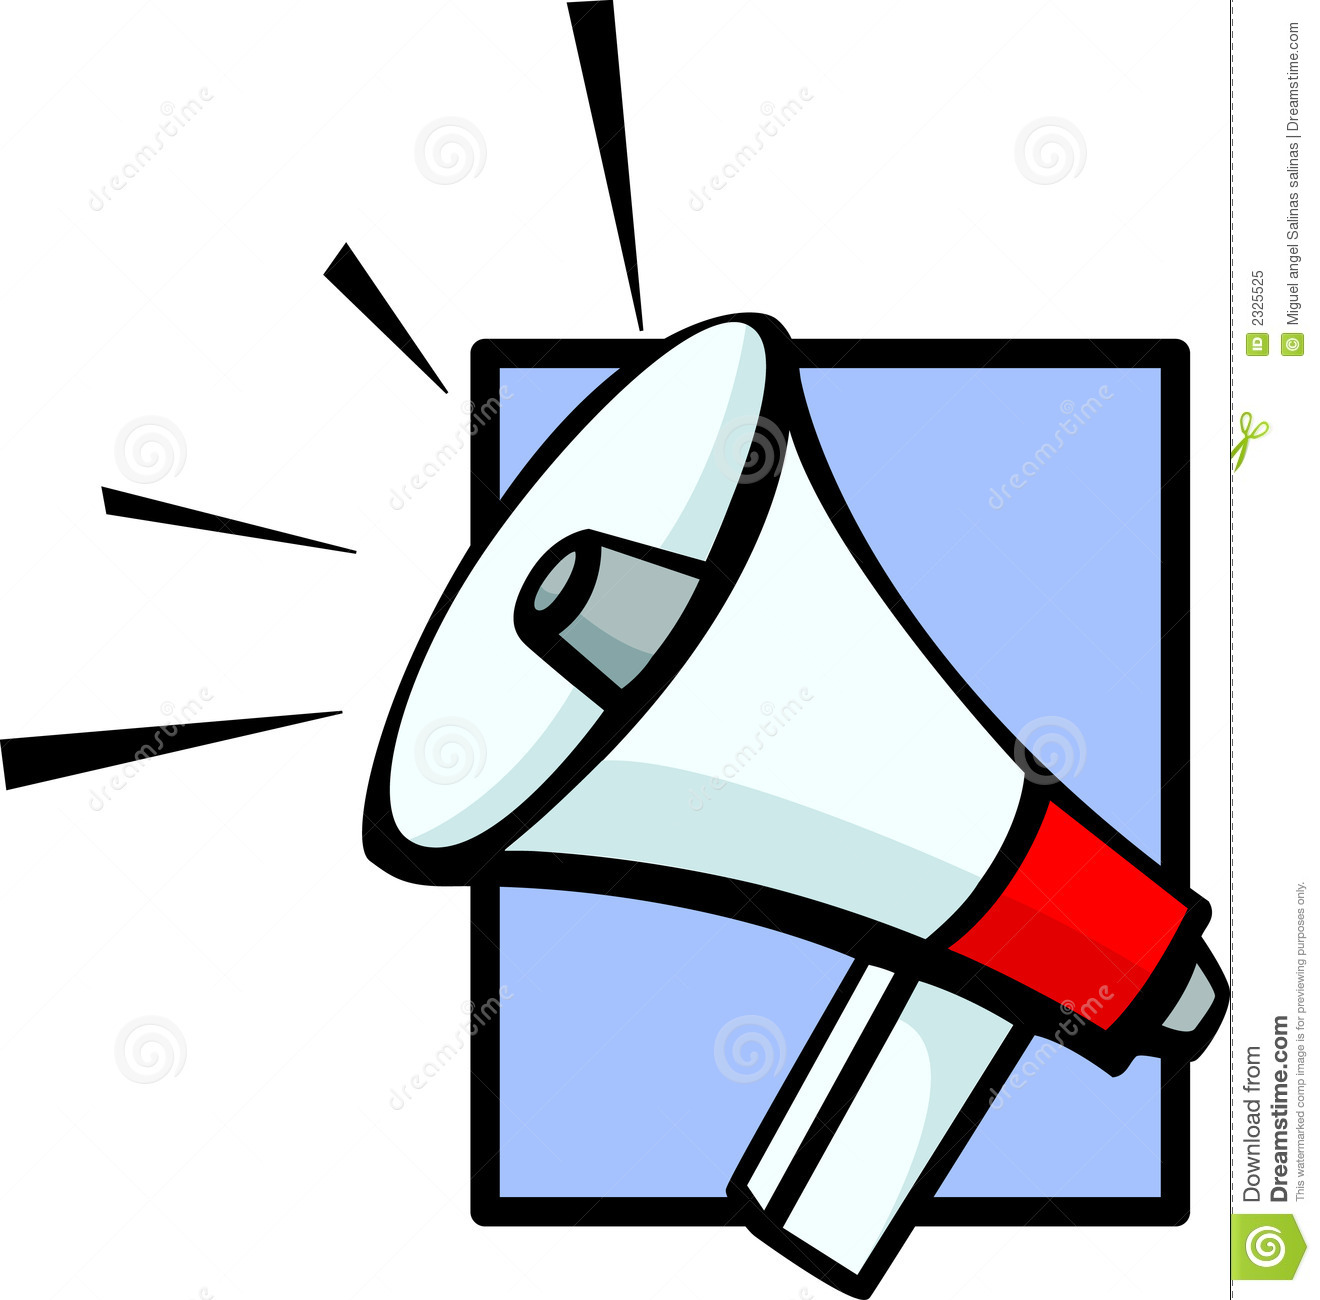 Electronic Bullhorn Vector Illustration Royalty Free Stock Photo.